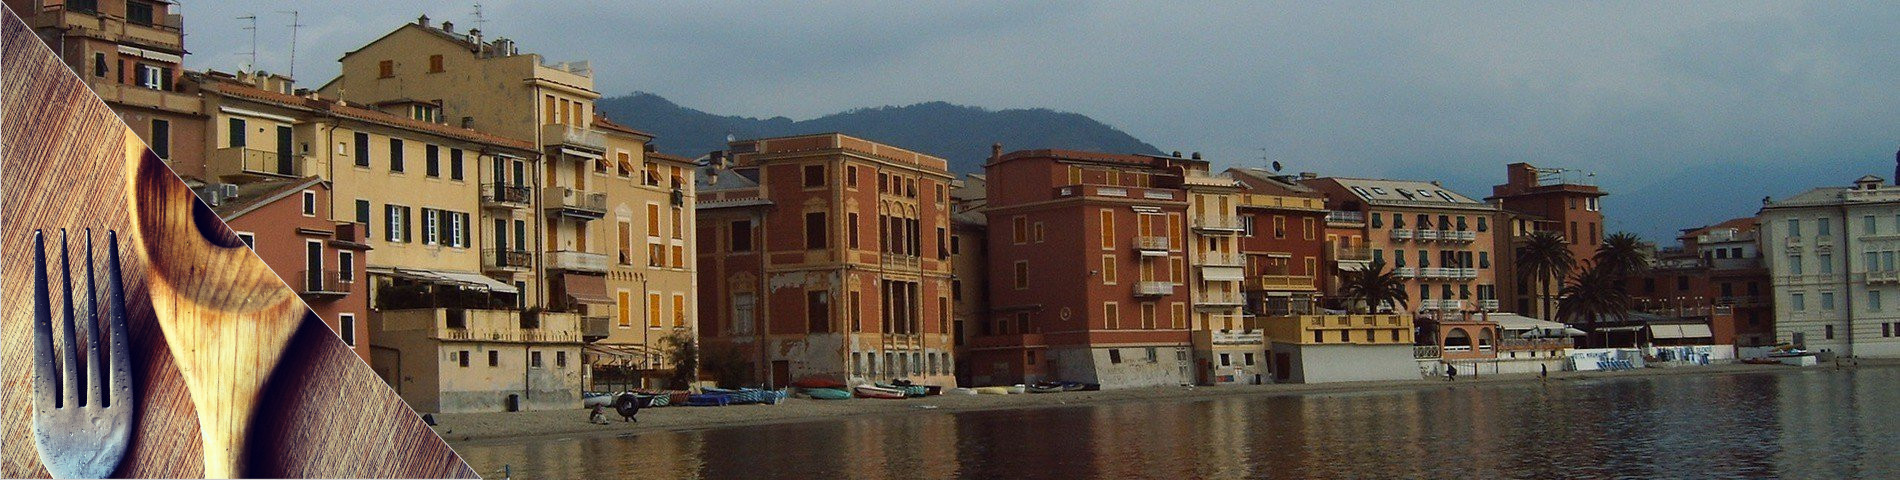 sestri levante senior singles Grand hotel villa balbi is probably the most beautiful hotel in sestri levante beach  guests are wowed by the magnificent frescoed ceilings dating back.